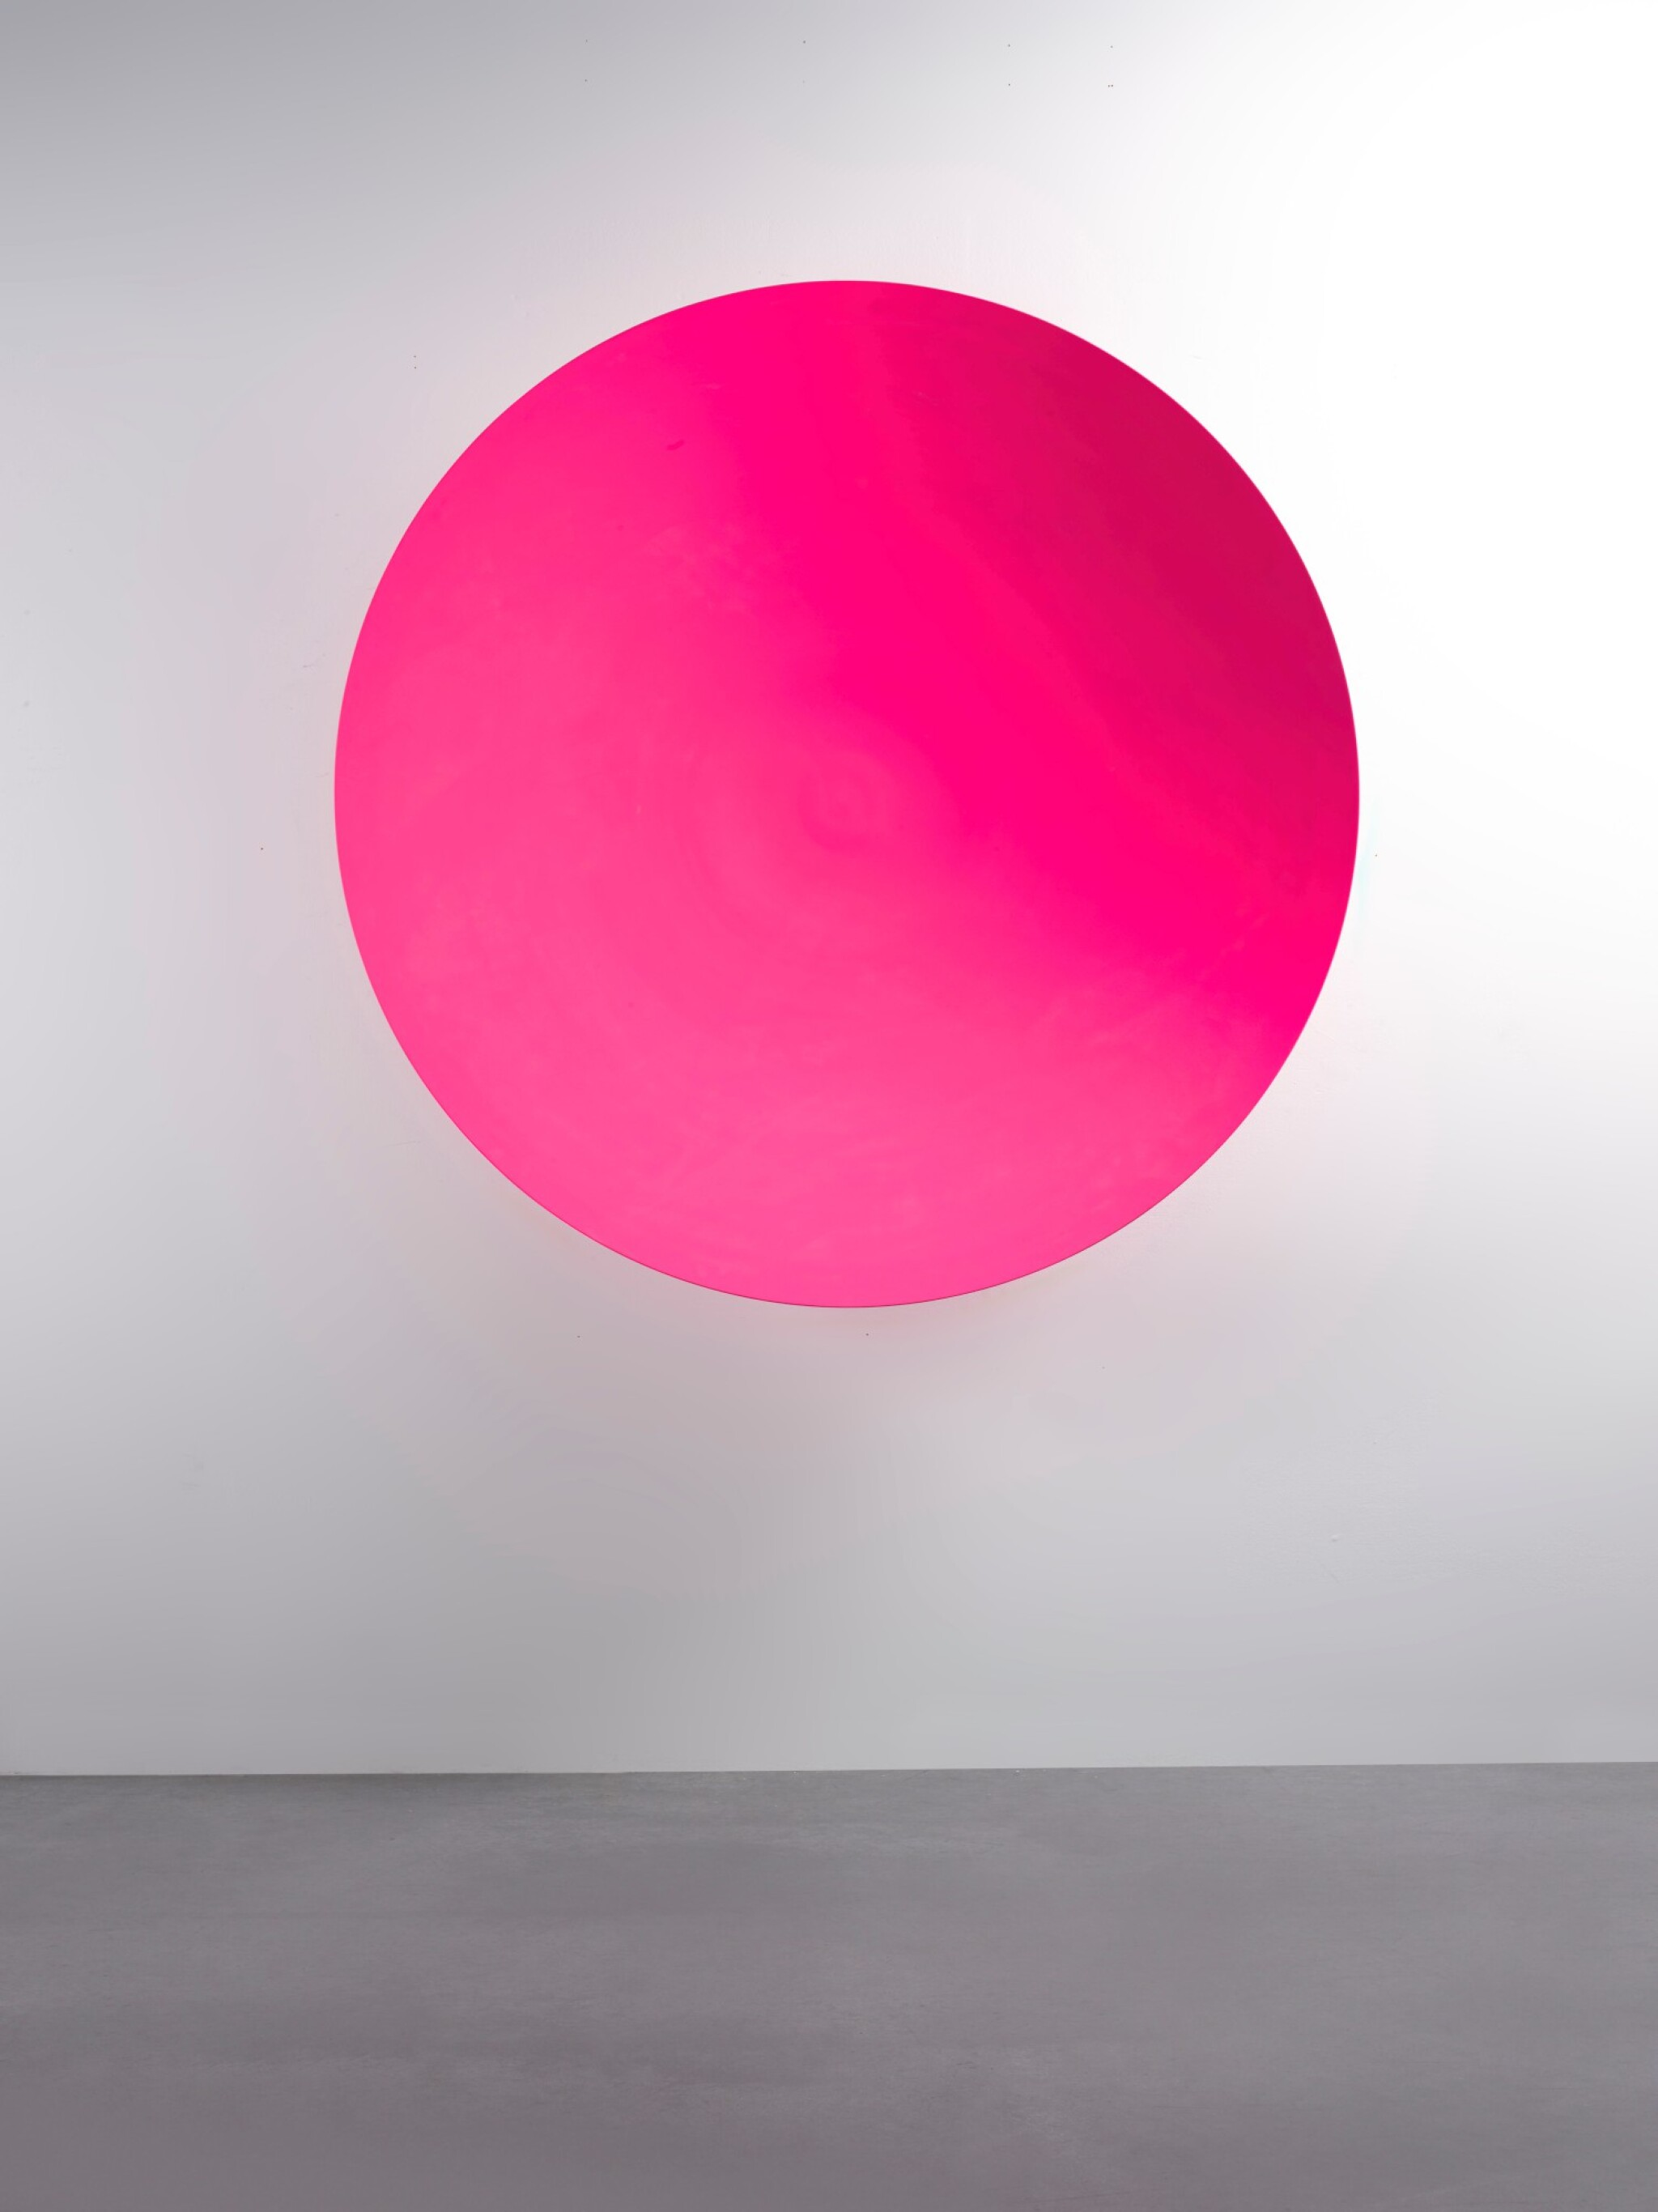 View full screen - View 1 of Lot 2. CHRIS LEVINE | PARABOLIC 1.3 [PINK], 2018.